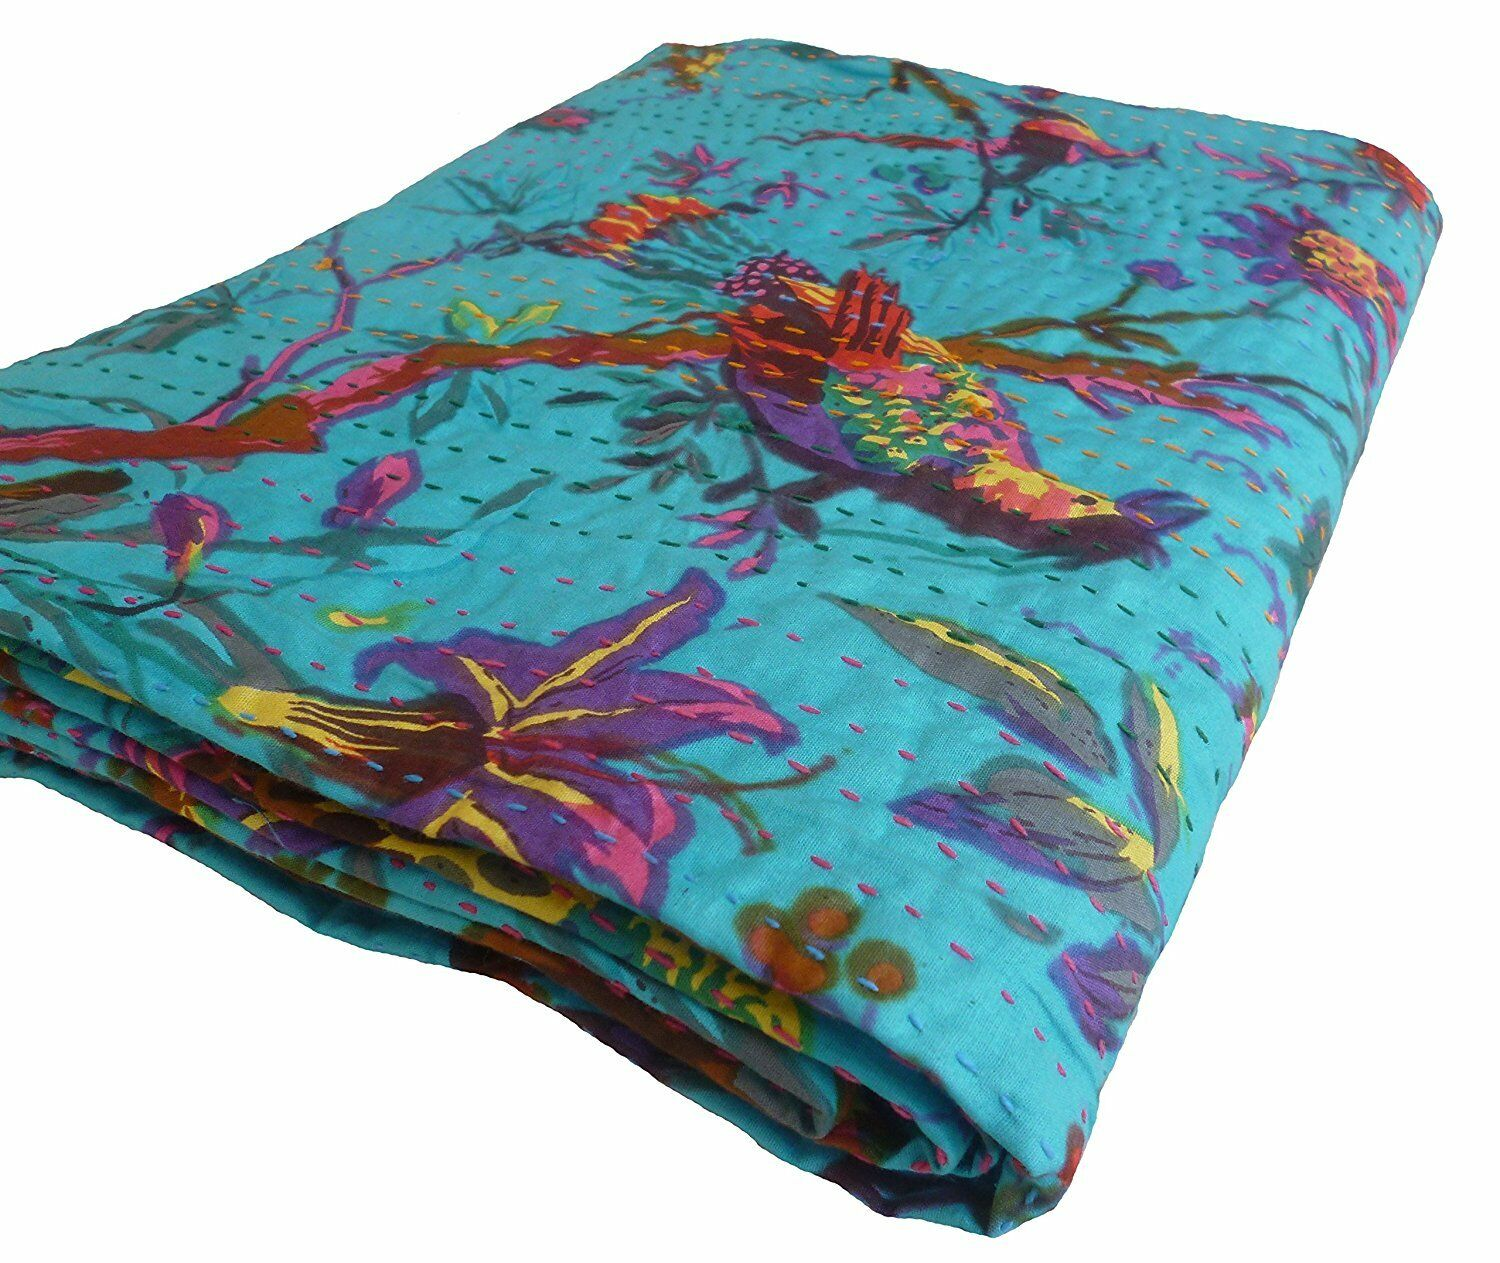 Indian flower Printed Comforter,Queen Quilt,Cotton Bedspread,Kantha Blanket